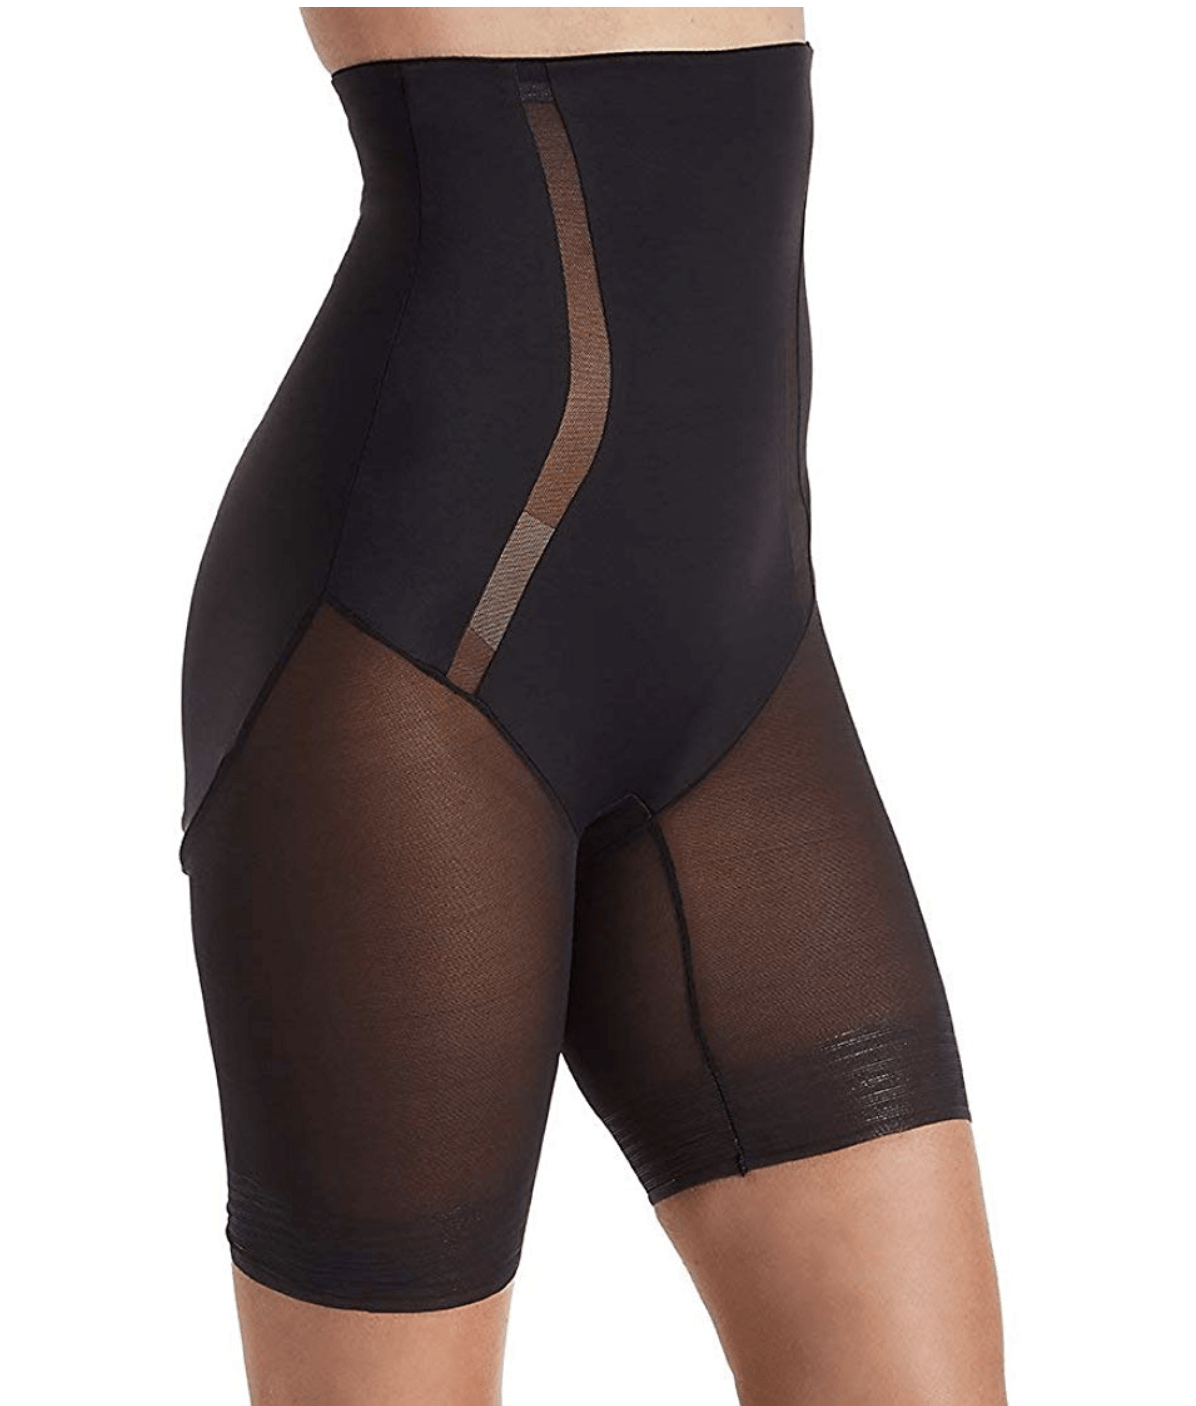 TC Middle Manager Hi Waist Thigh Slimmer 4289 Shapewear Black / S TC